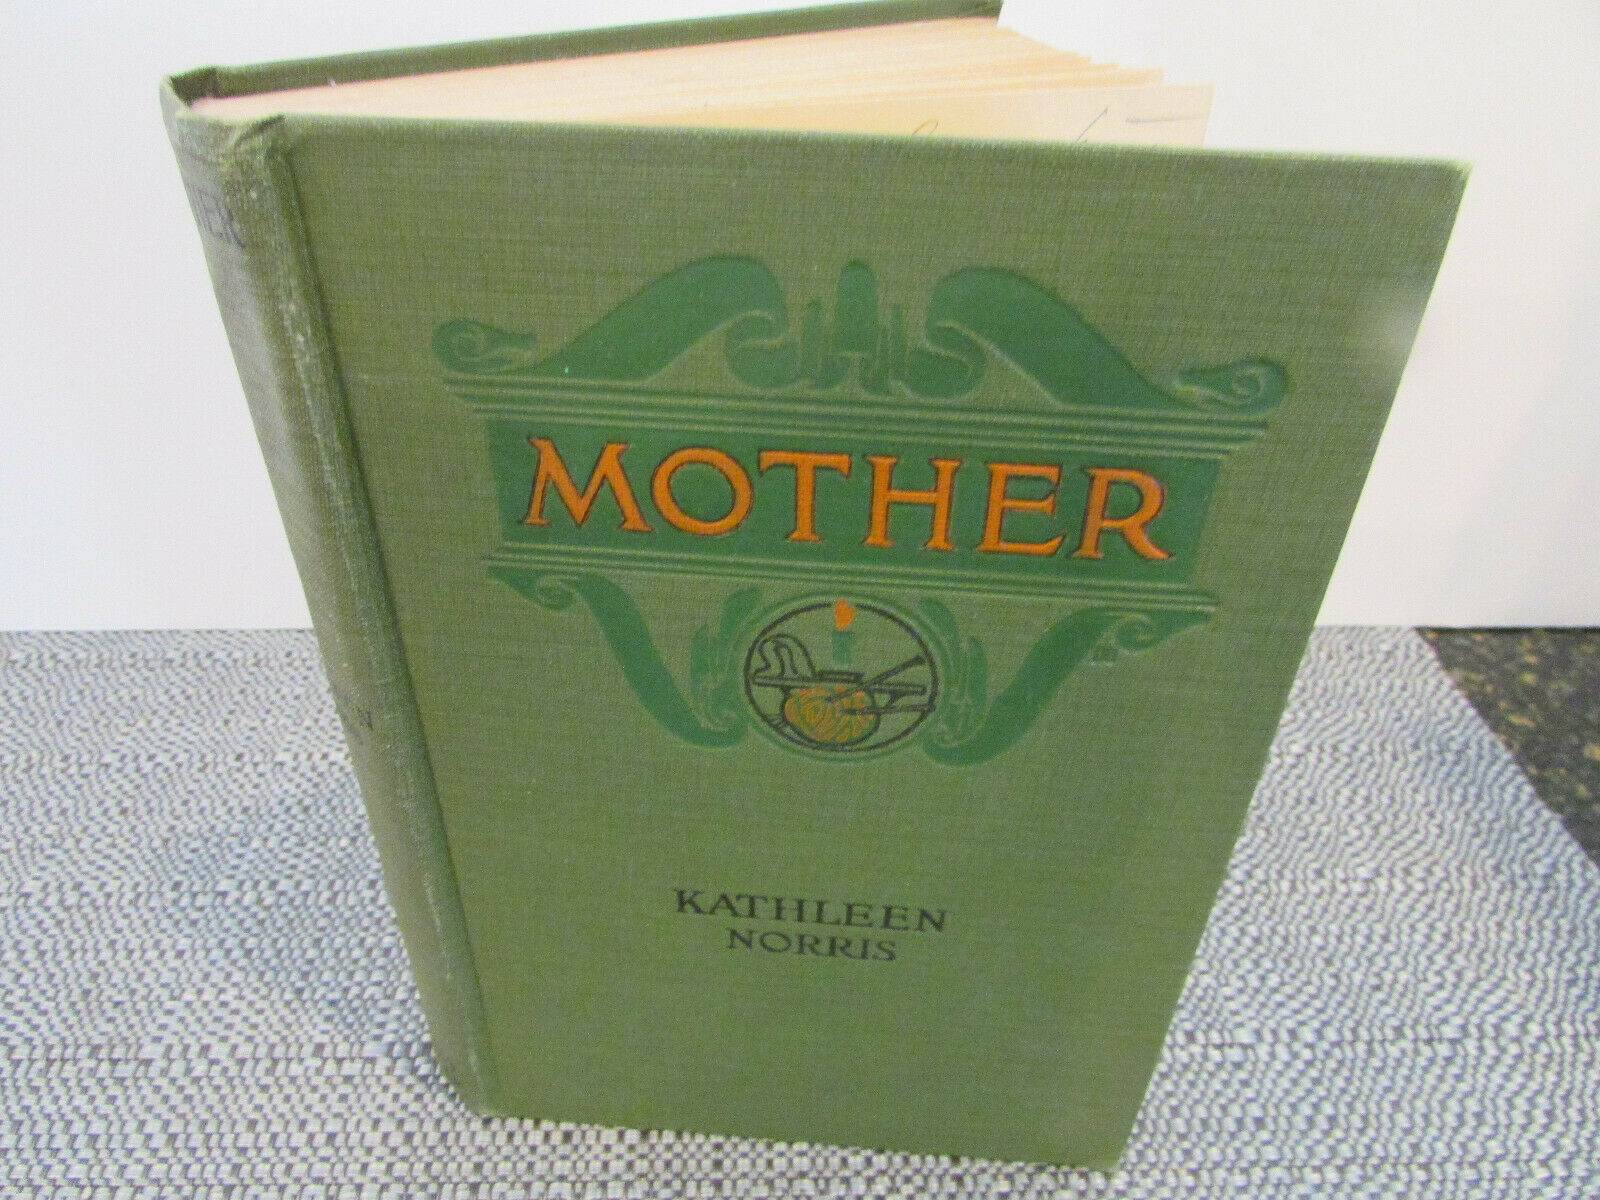 Primary image for MOTHER A STORY BY KATHLEEN NORRIS HC BOOK GROSSET & DUNLAP